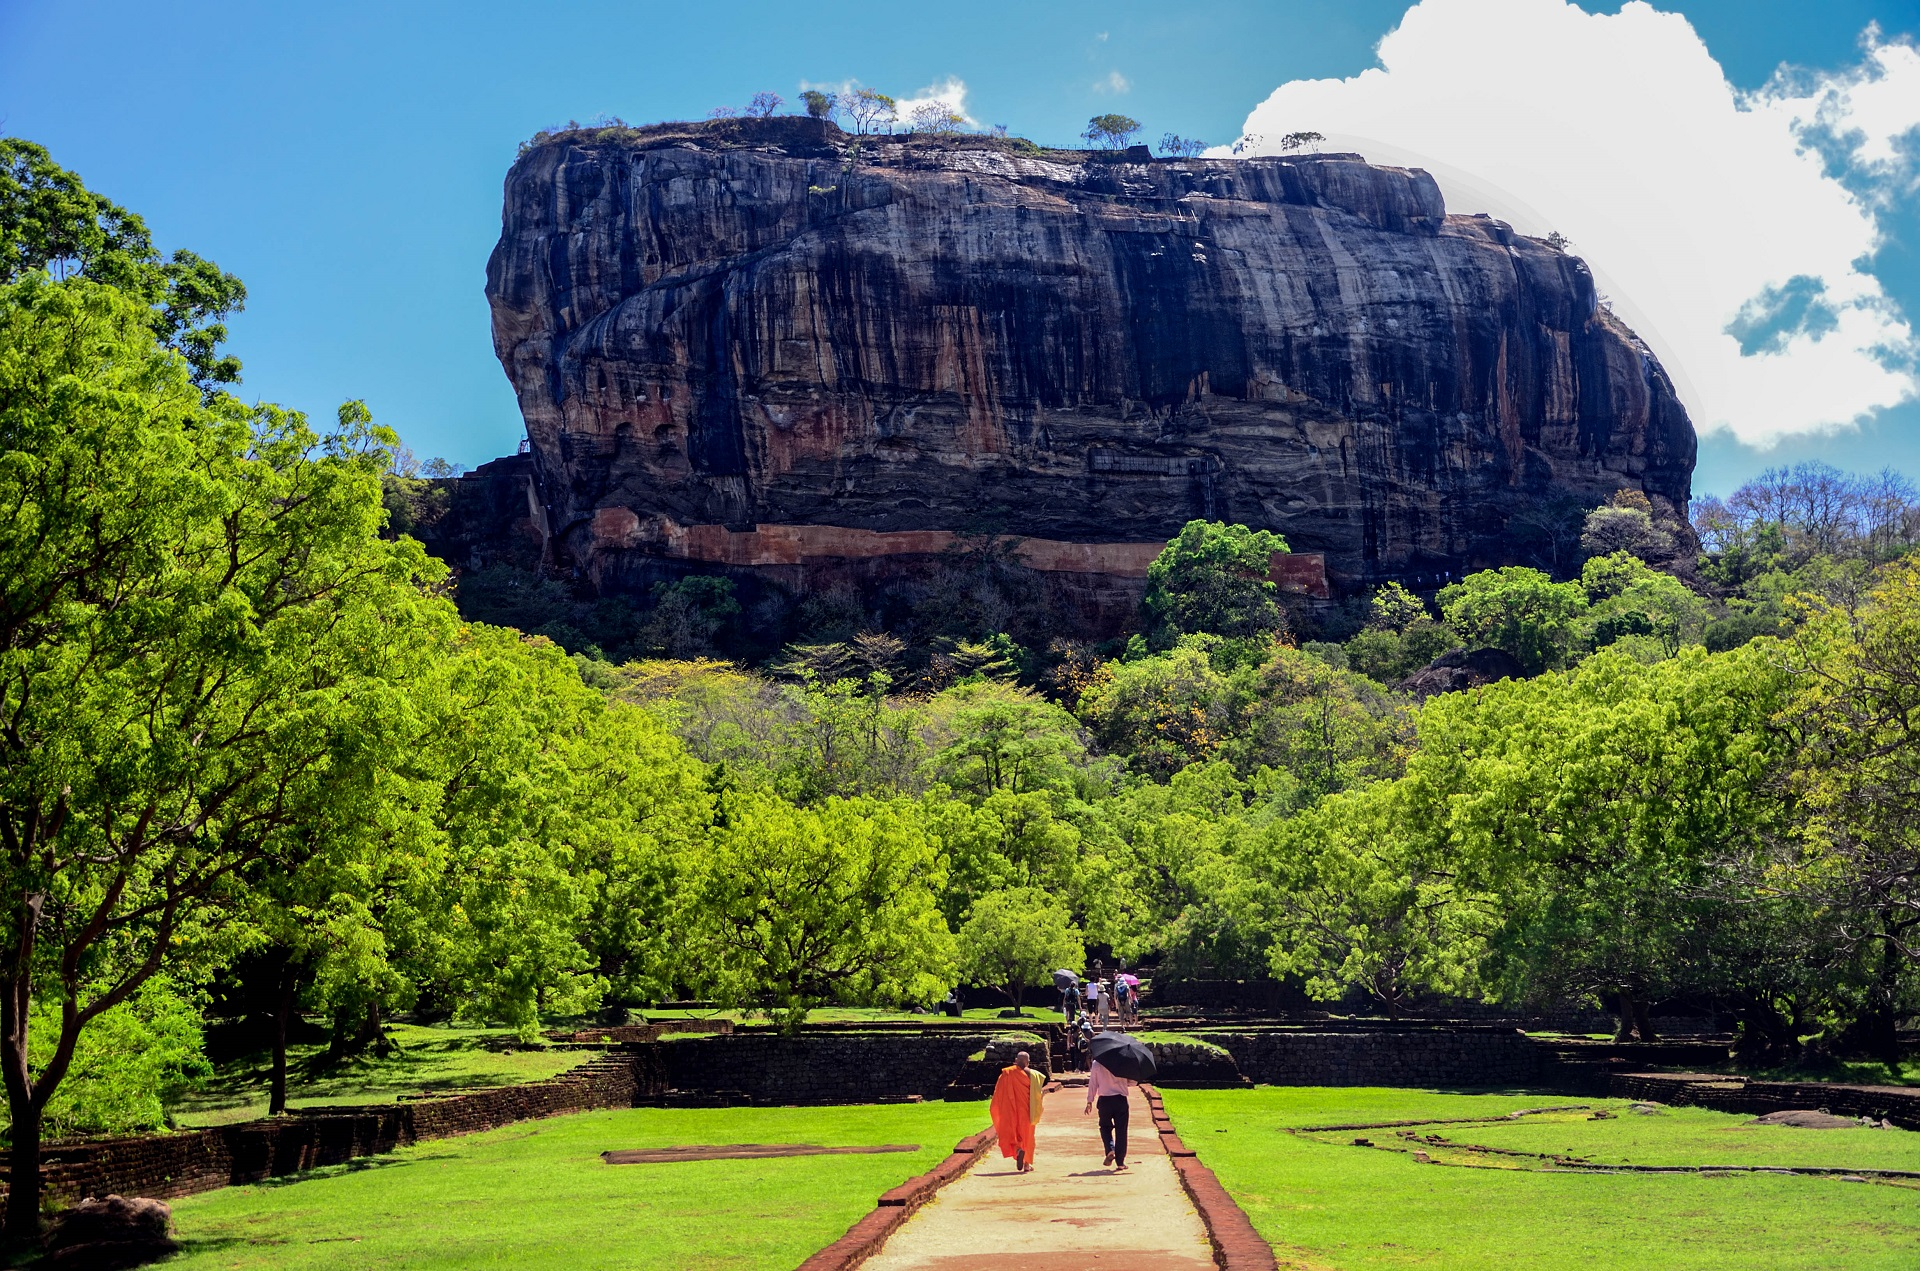 Lion's rock, Sigiriya